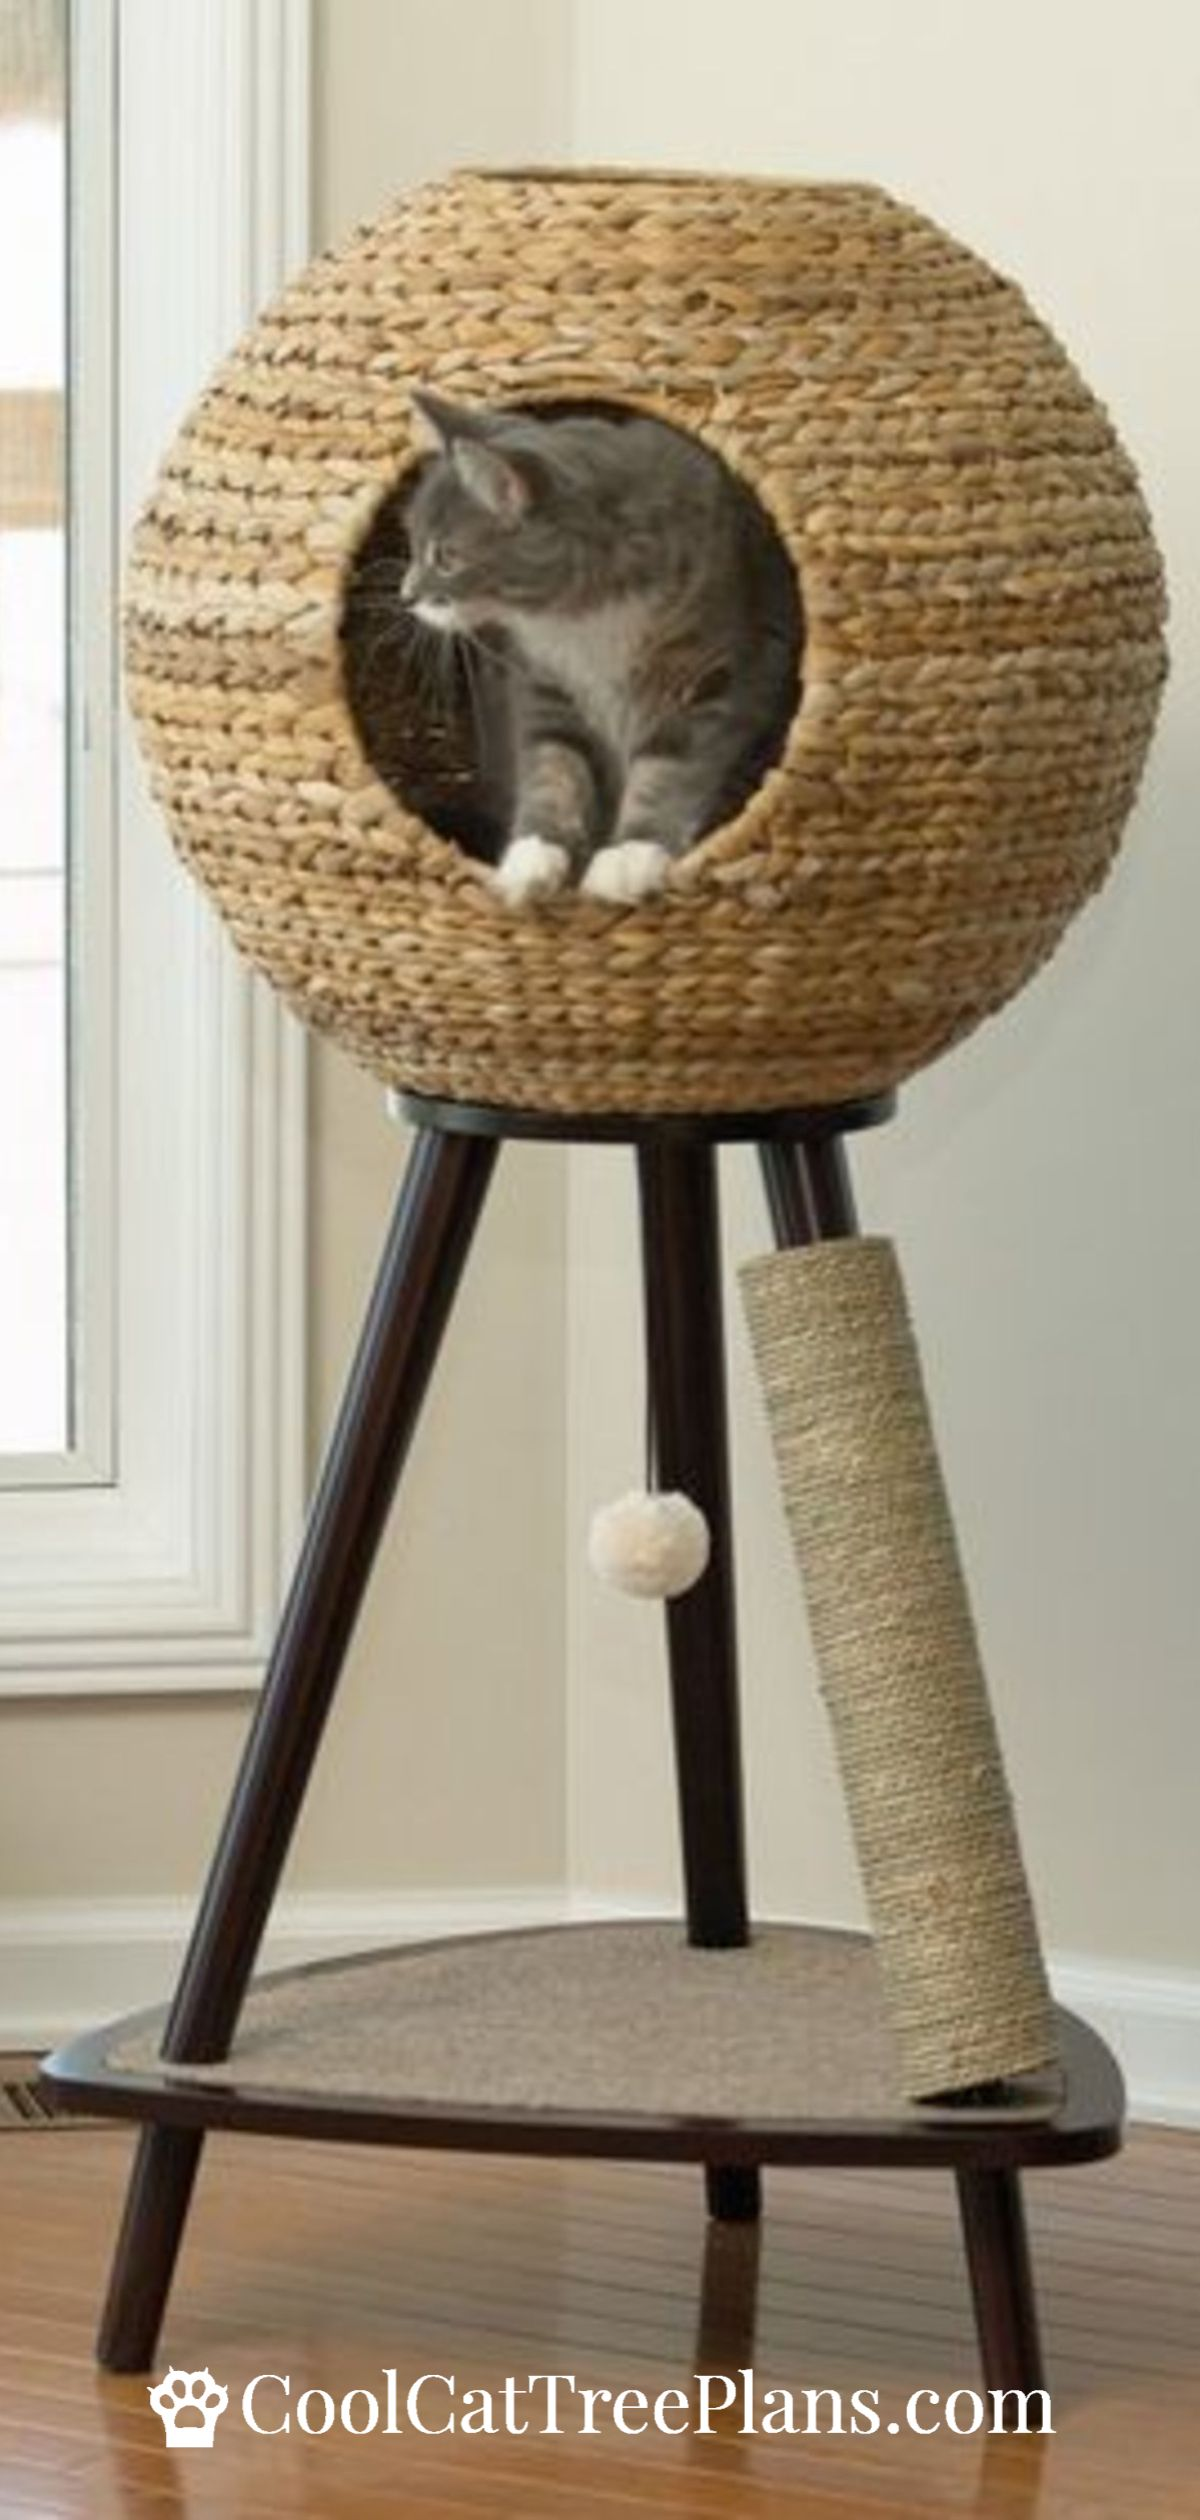 Modern cat furniture doesnt need carpet to make cats happy this makes people